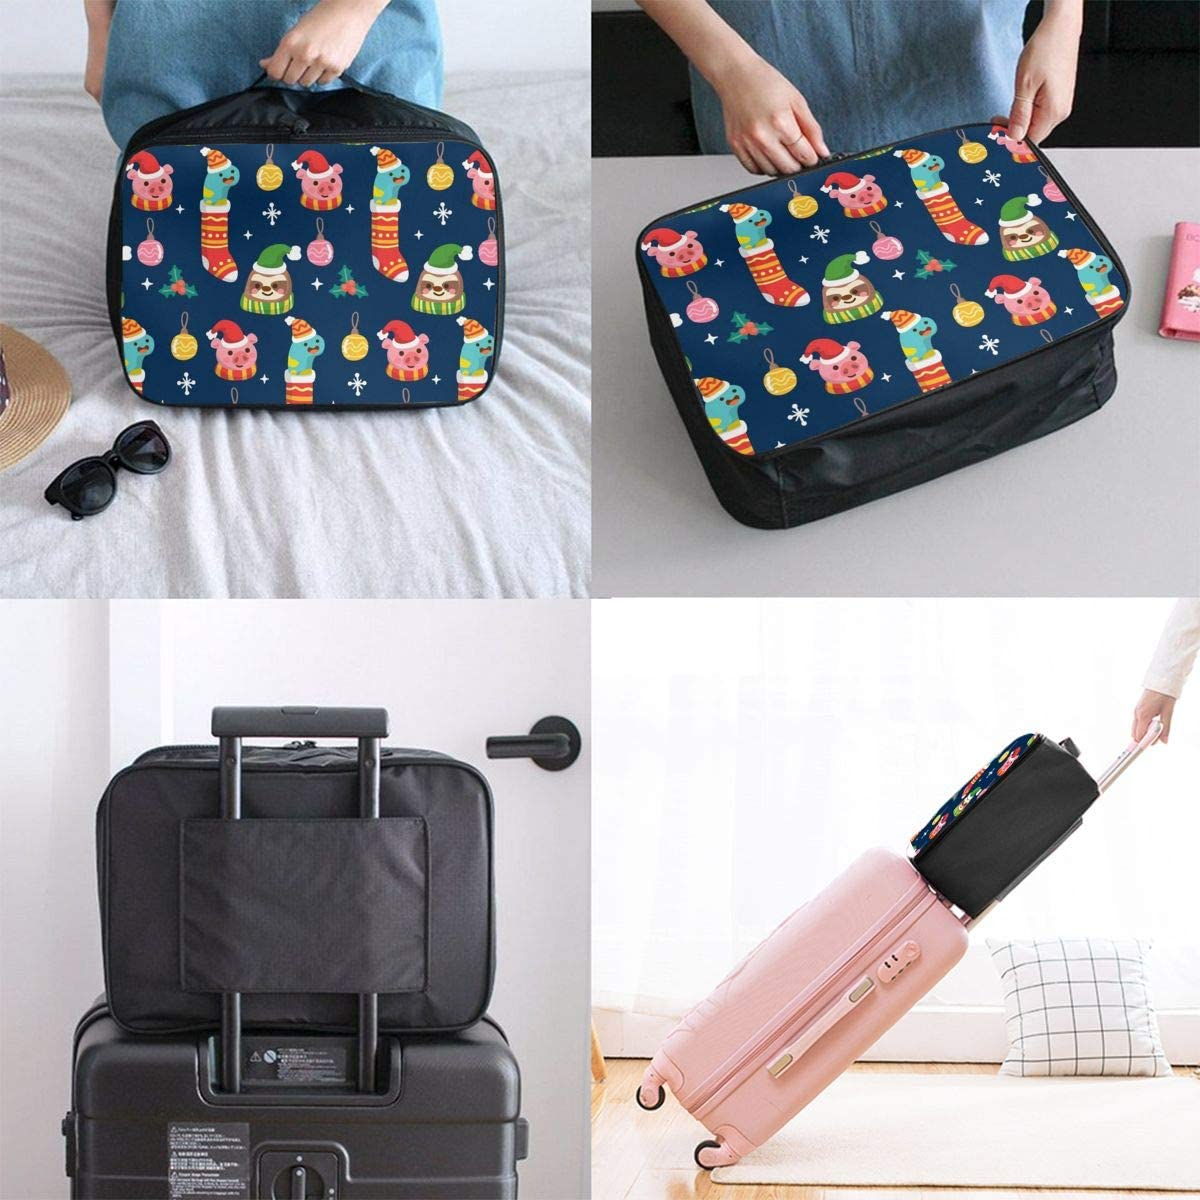 Funny Christmas Lightweight LargeTravel Storage Luggage Trolley Bag Travel Duffel Bags Carry-On Tote